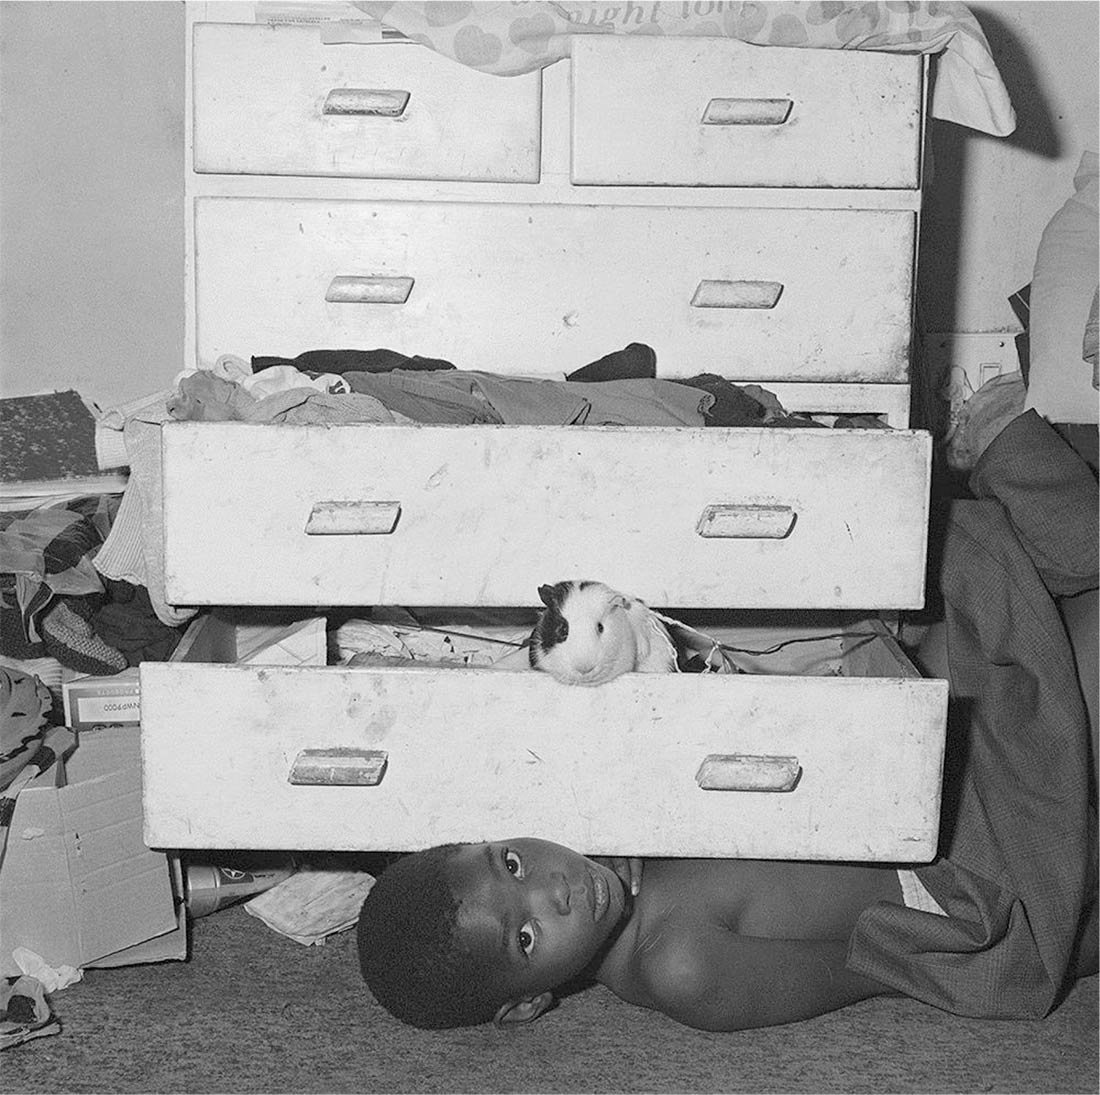 Roger-Ballen-Outland-Unpublished-Child-under-chest-of-drawers-2000